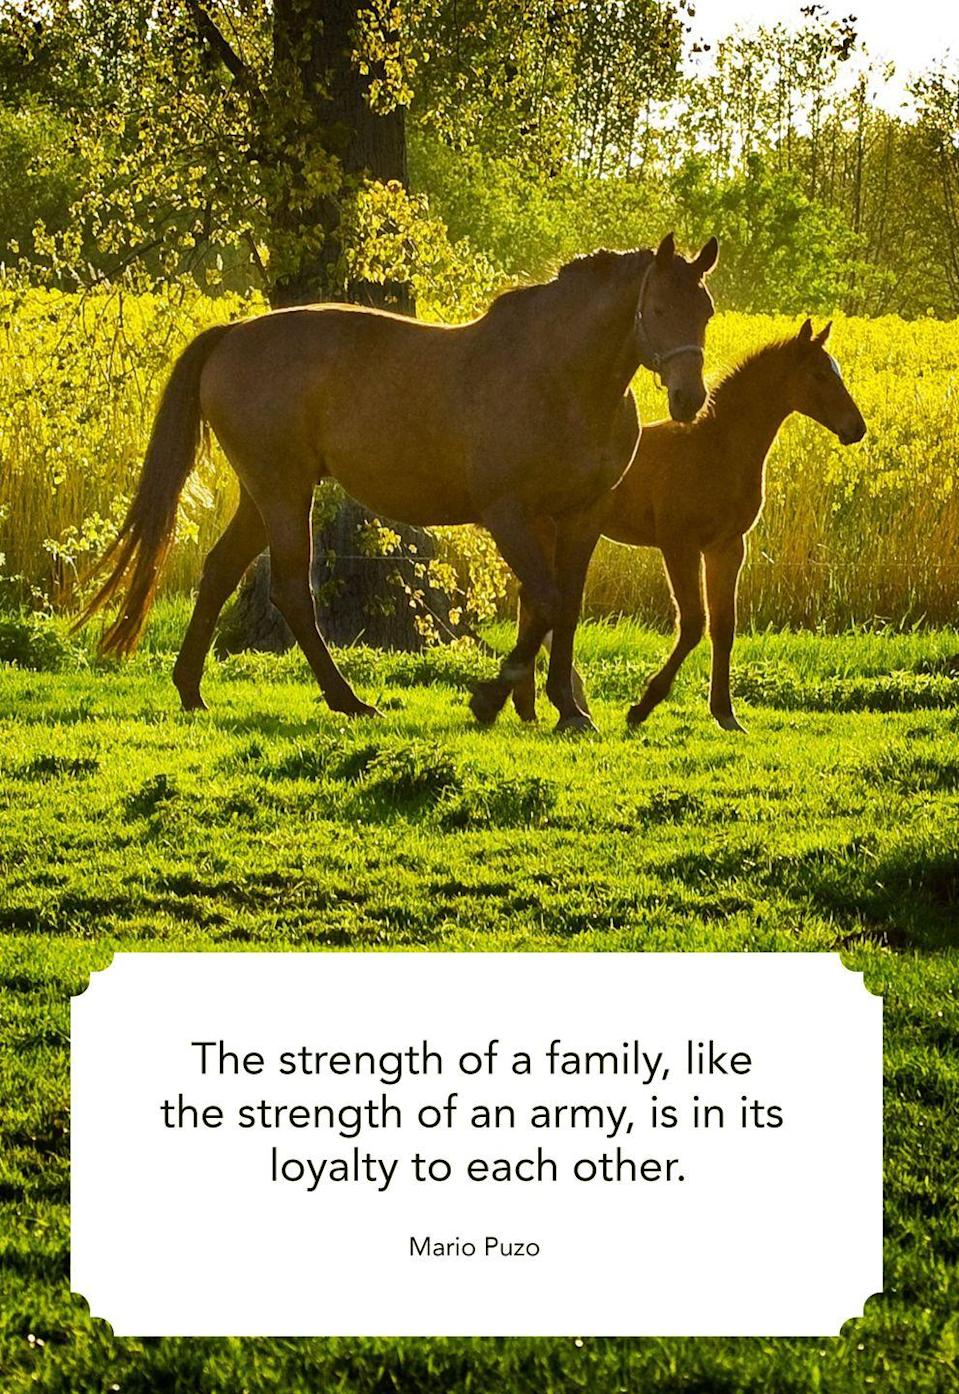 "<p>""The strength of a family, like the strength of an army, is in its loyalty to each other.""</p>"